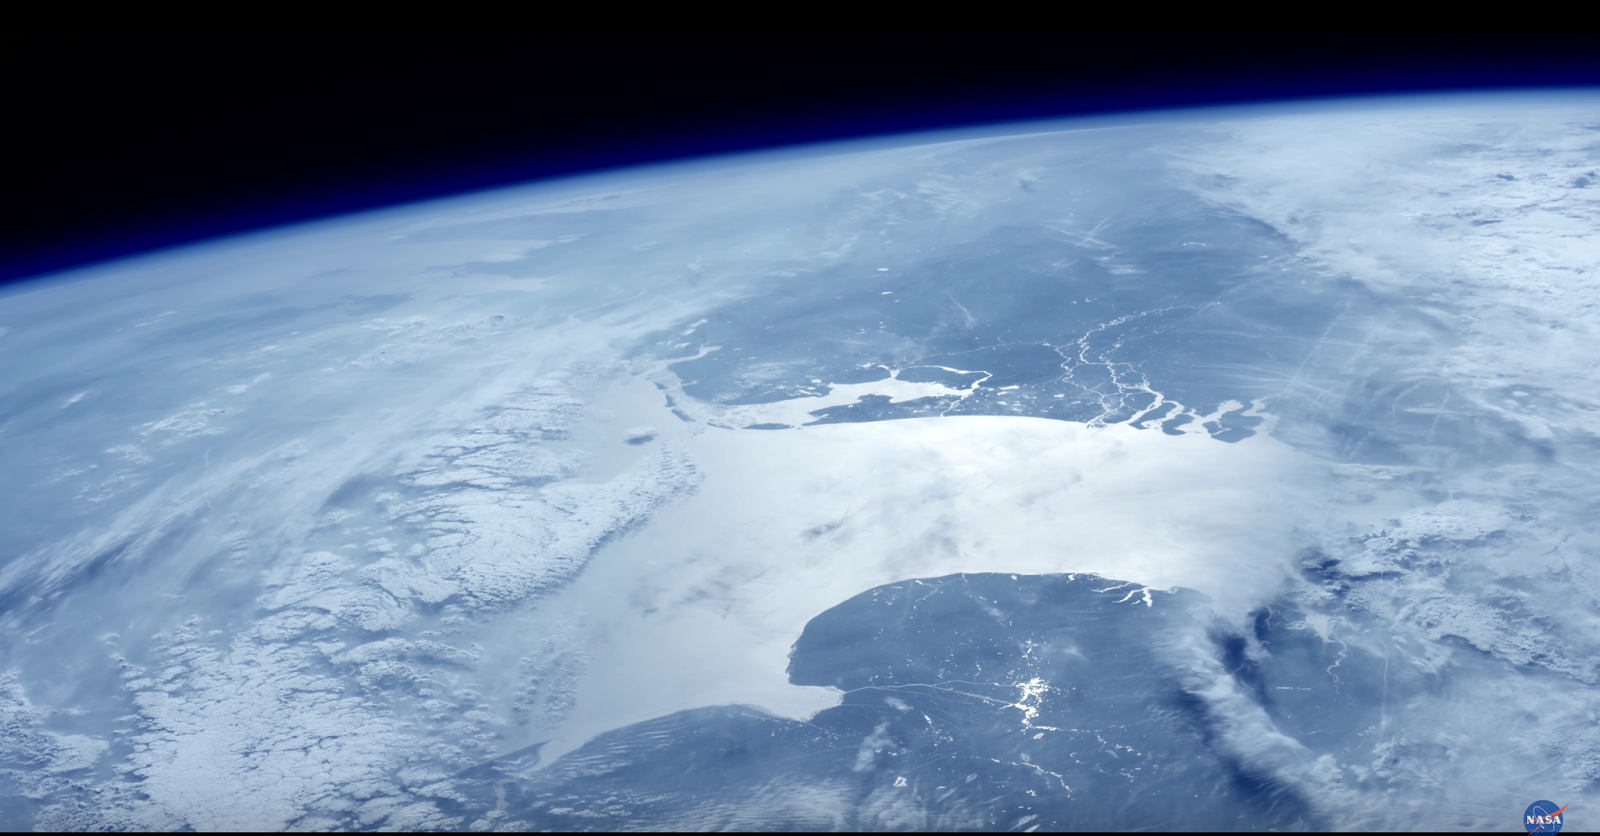 Ultra High Definition Video of Earth From Space Is So Beautiful It'll Change Your Perspective